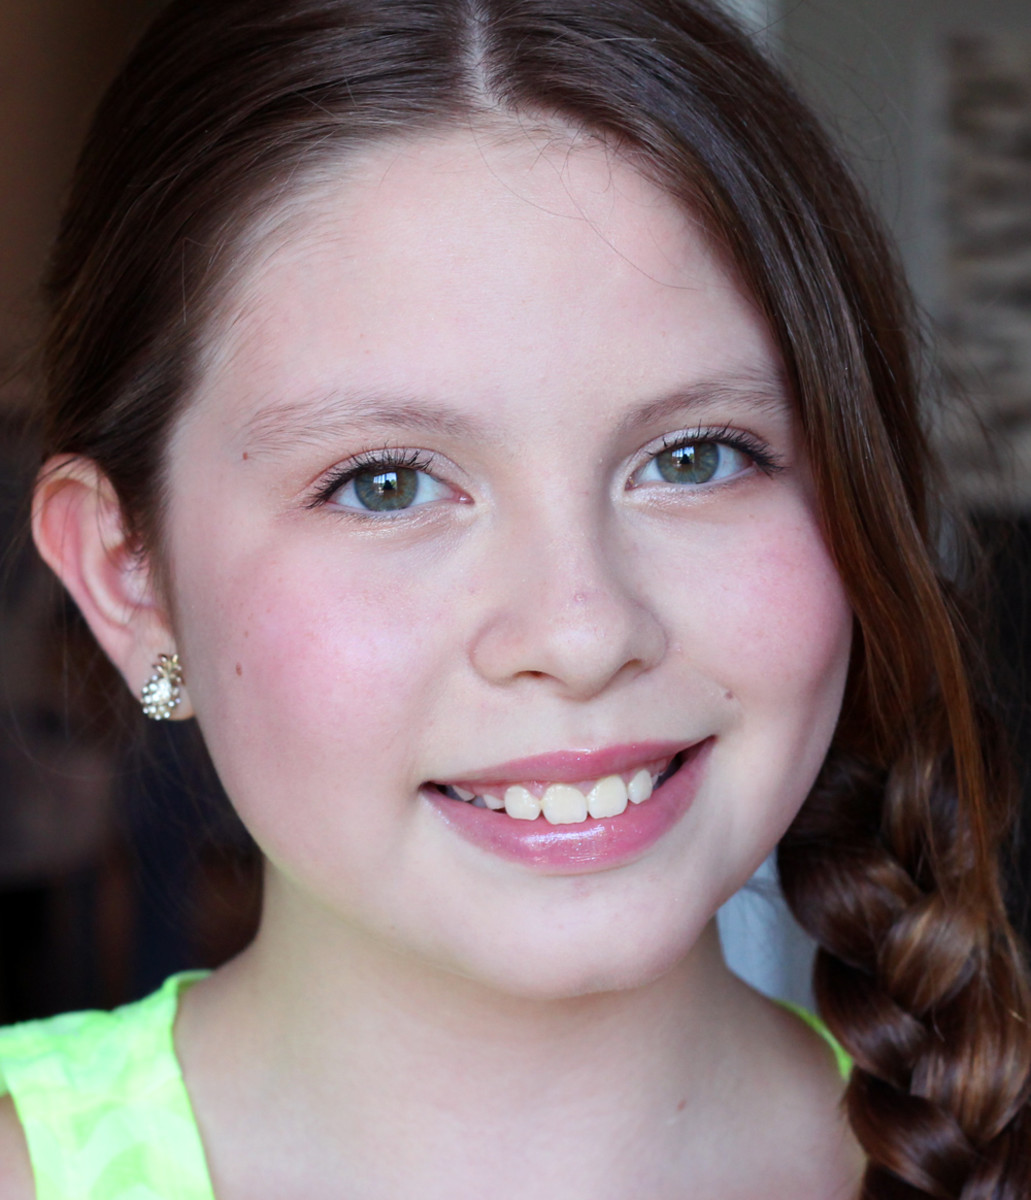 Age-appropriate tween makeup: that's a look that makes us older ladies look younger.